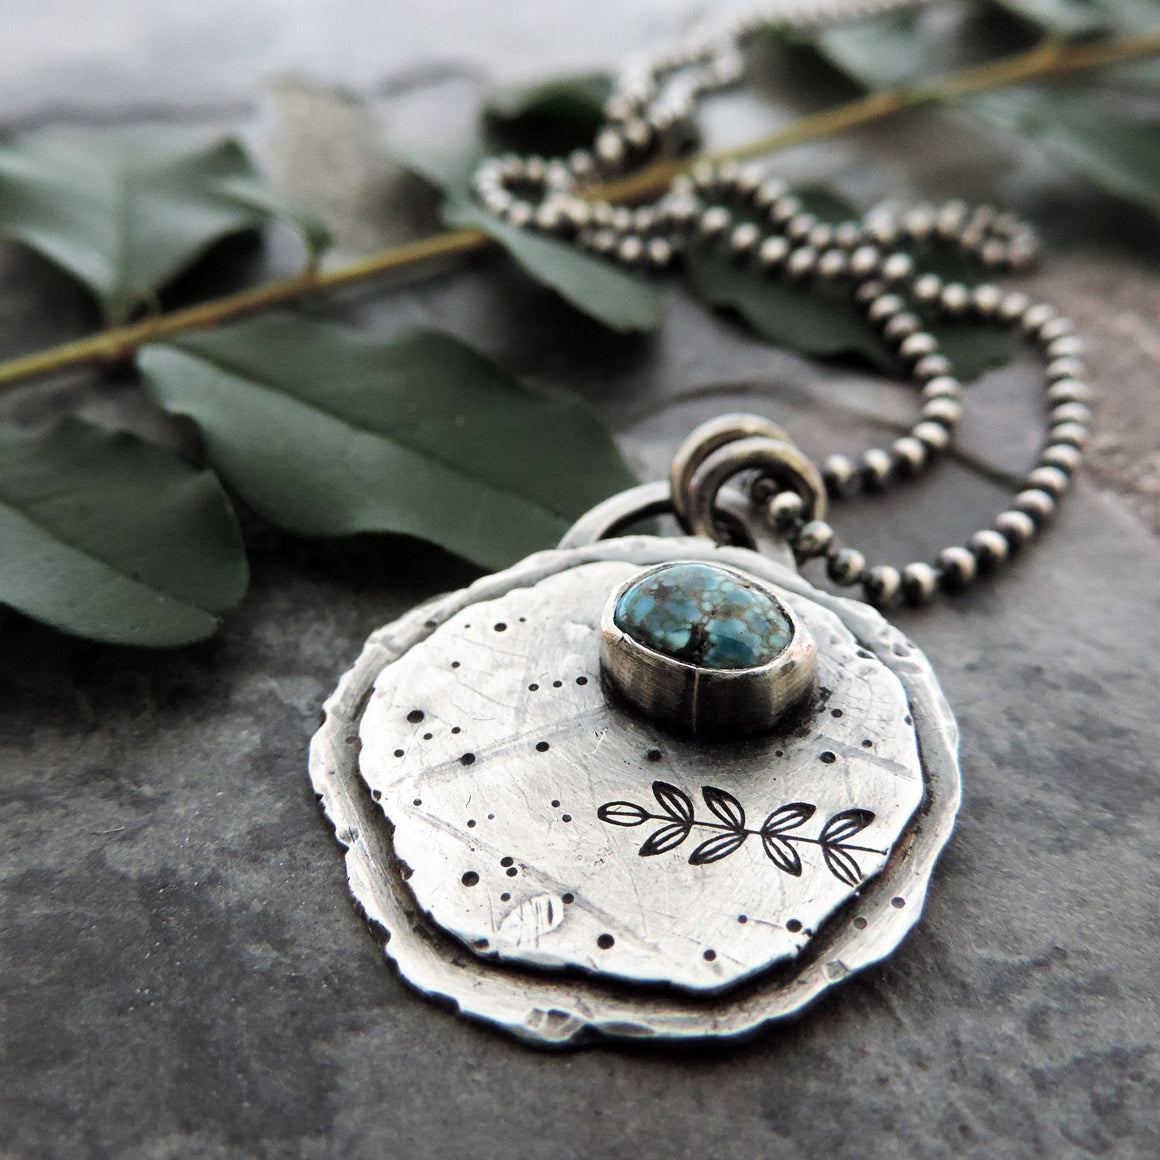 Silver Organic Botanical Imprint Pendant with Turquoise Stone